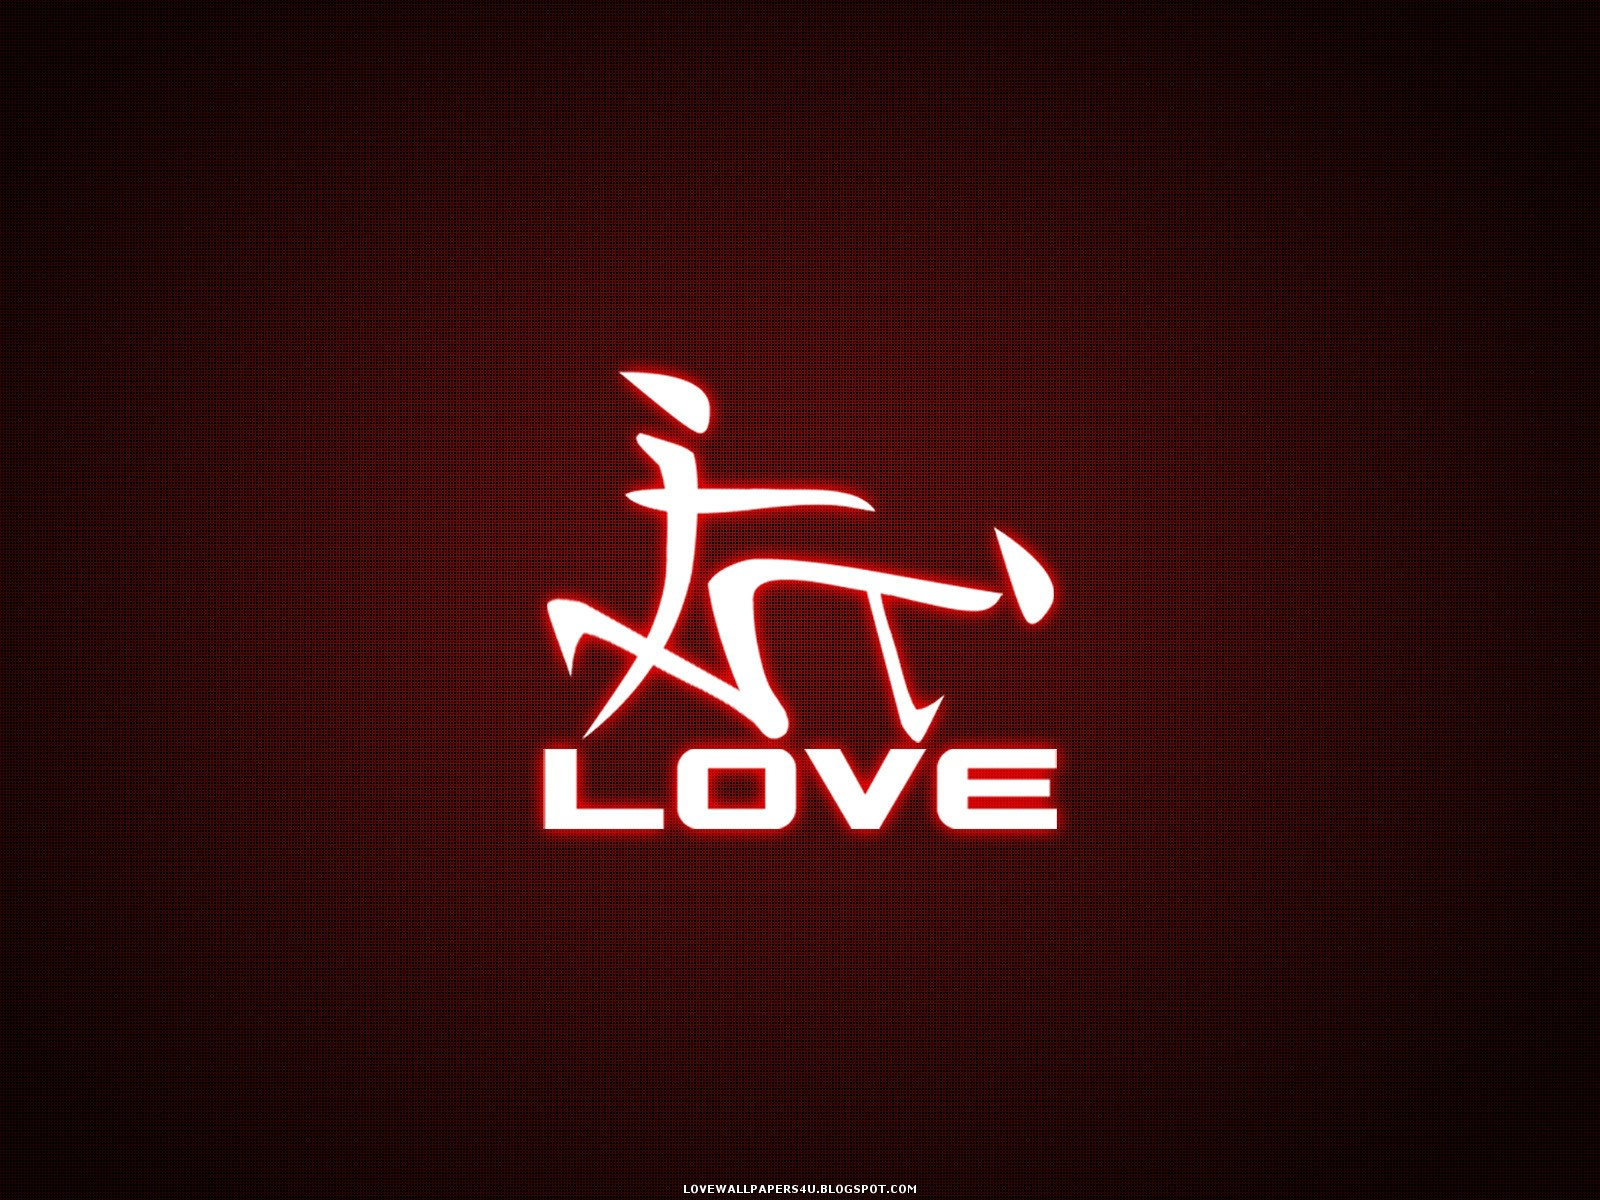 Love Sign Love Wallpapers Romantic Wallpapers - Stock Photos iPhone Backgrounds